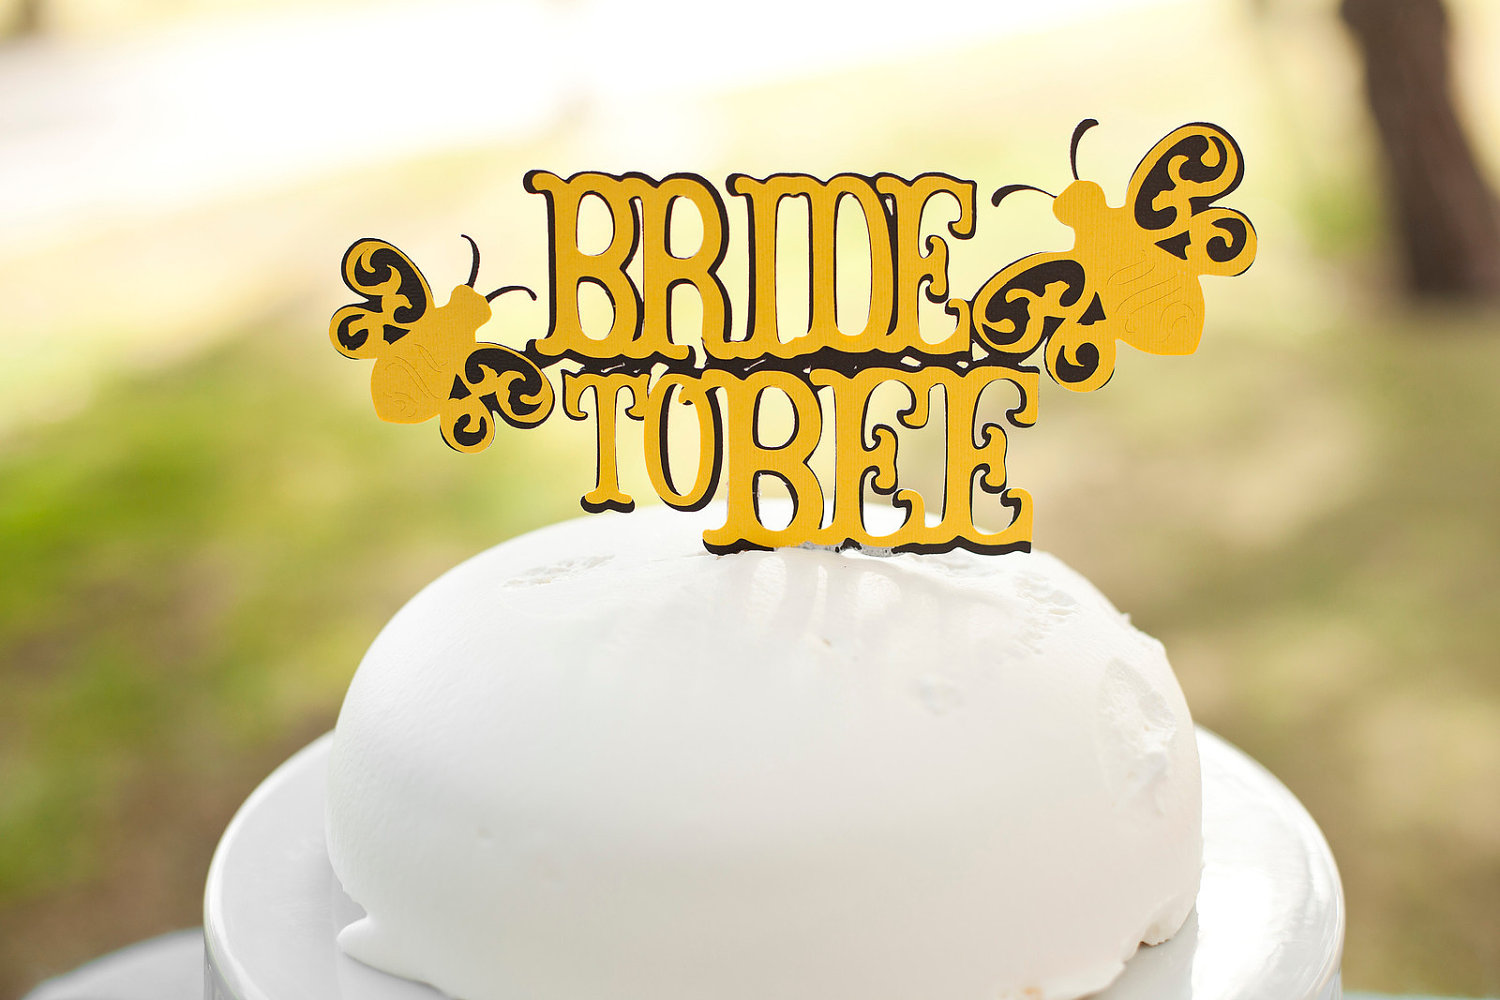 Adorable wedding cake topper bride to bee OneWed.com